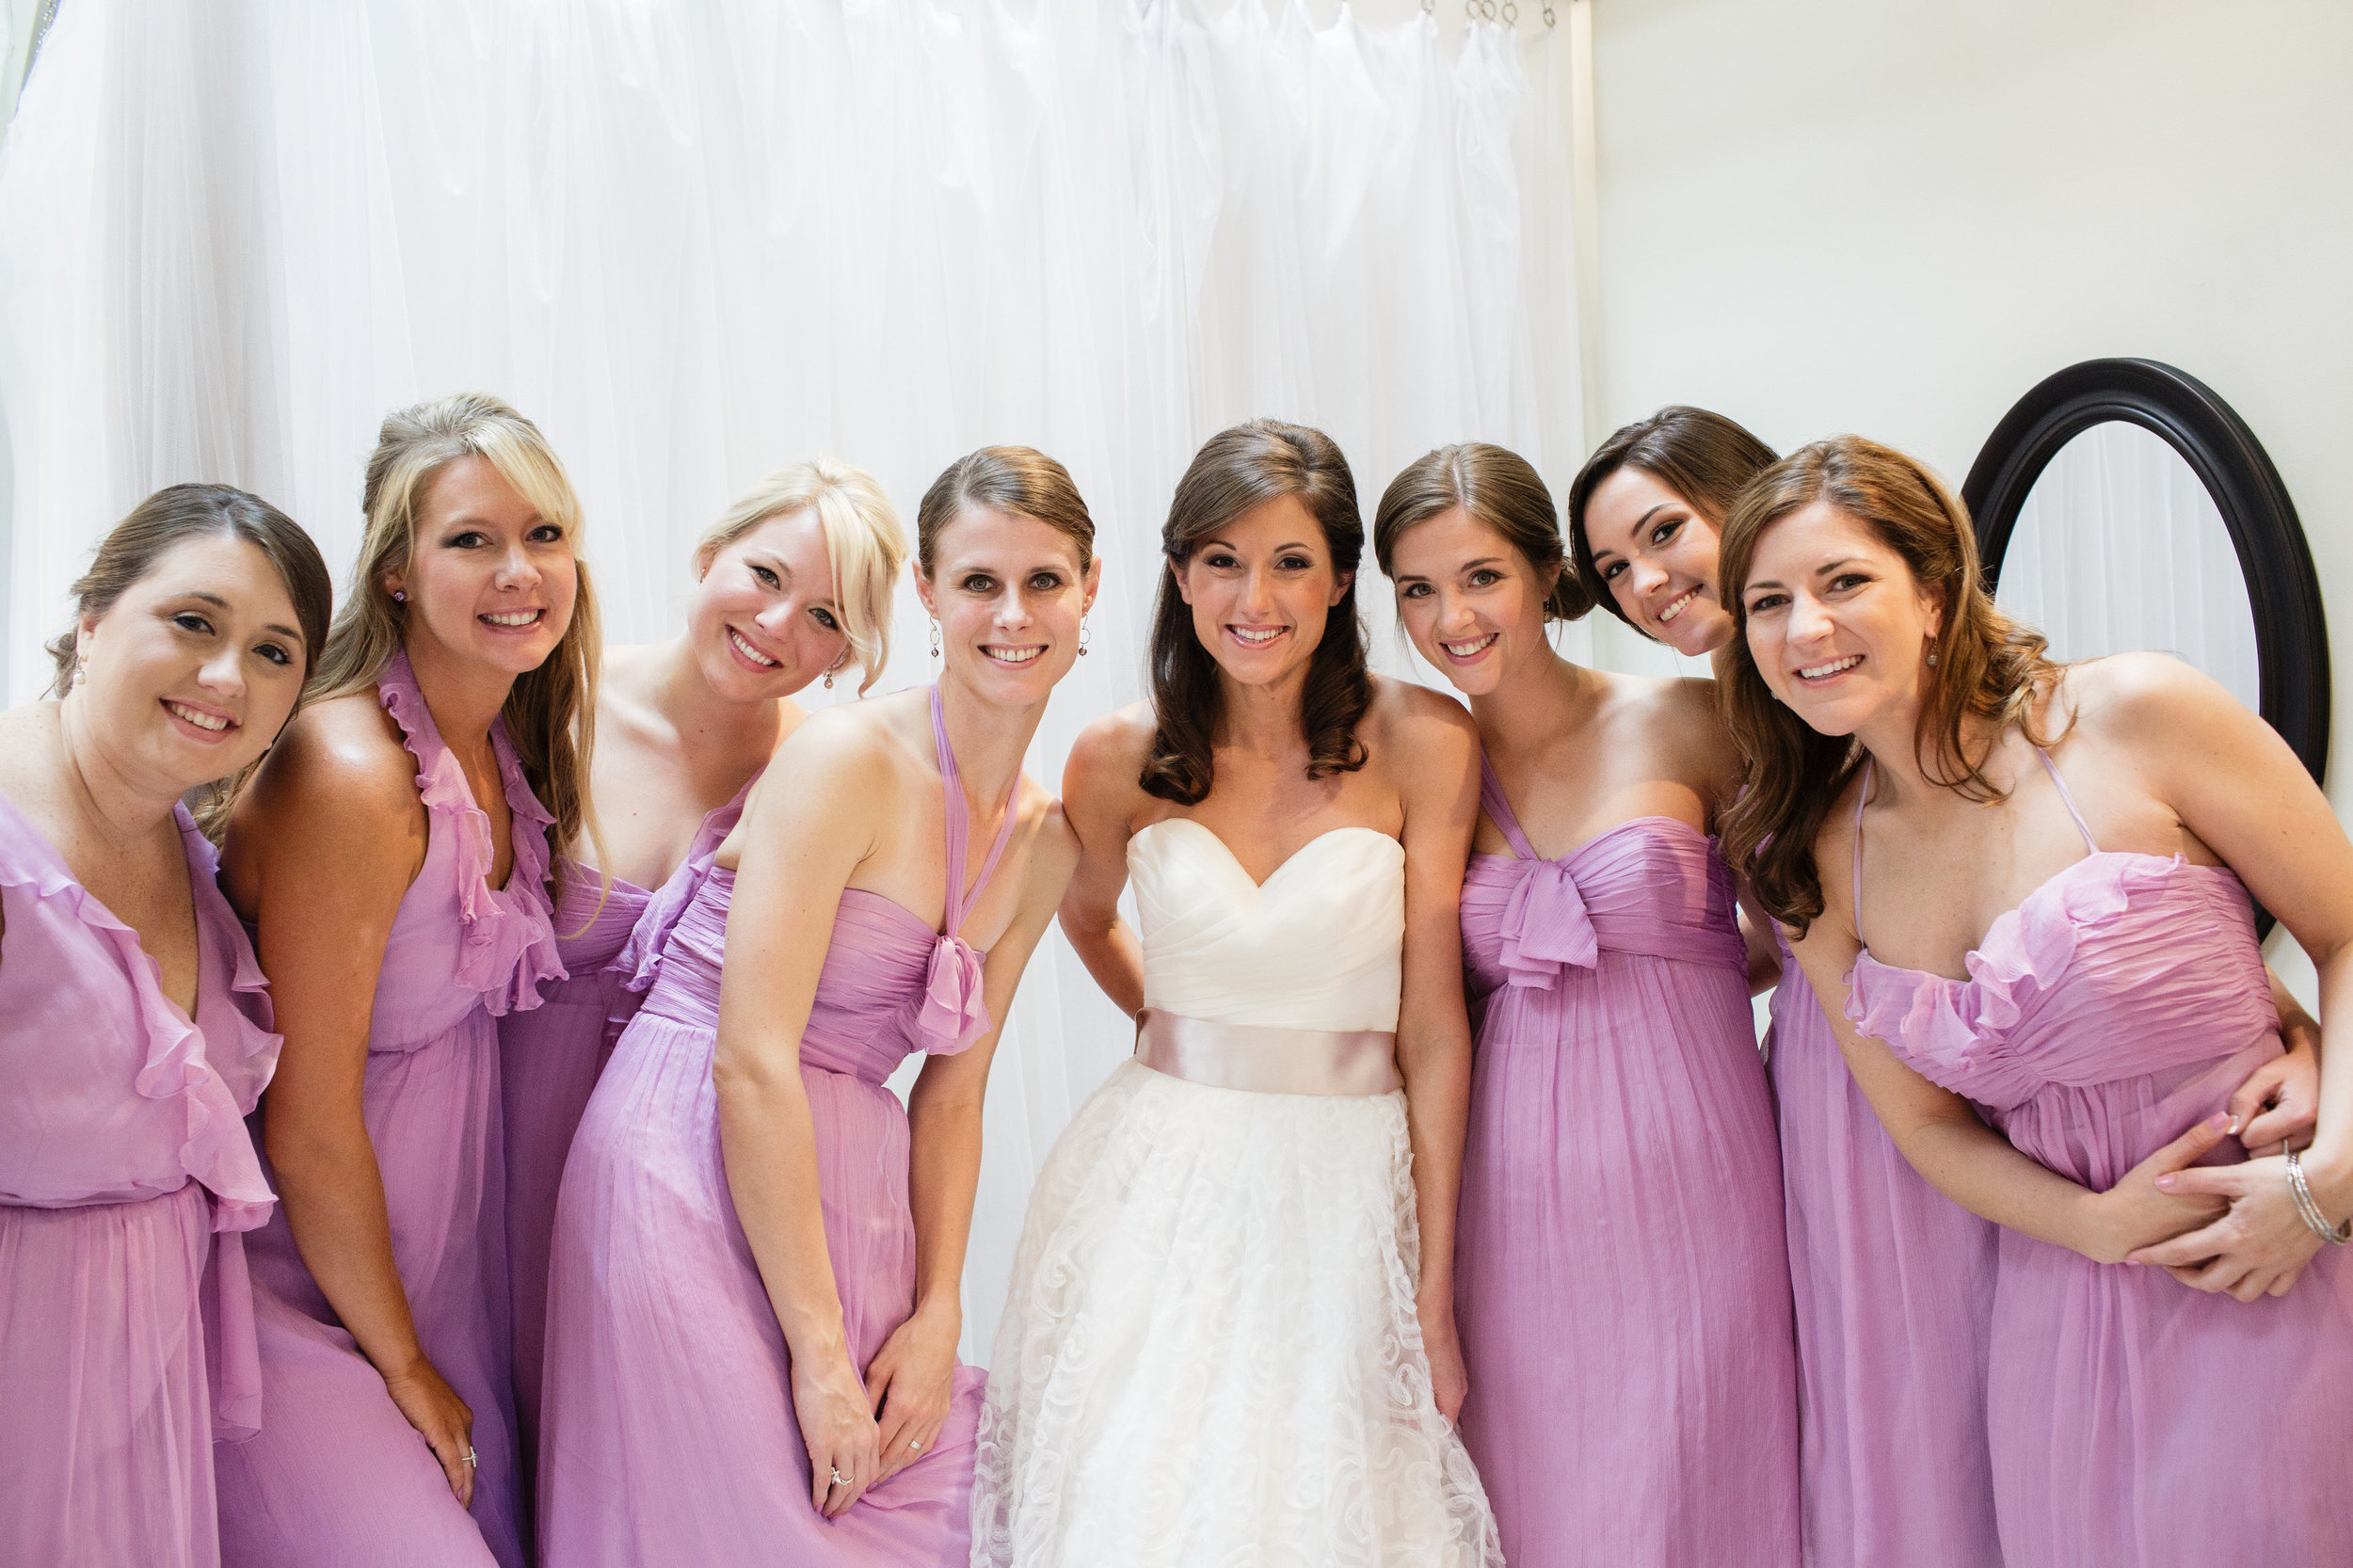 Bridesmaids_The LovingKind